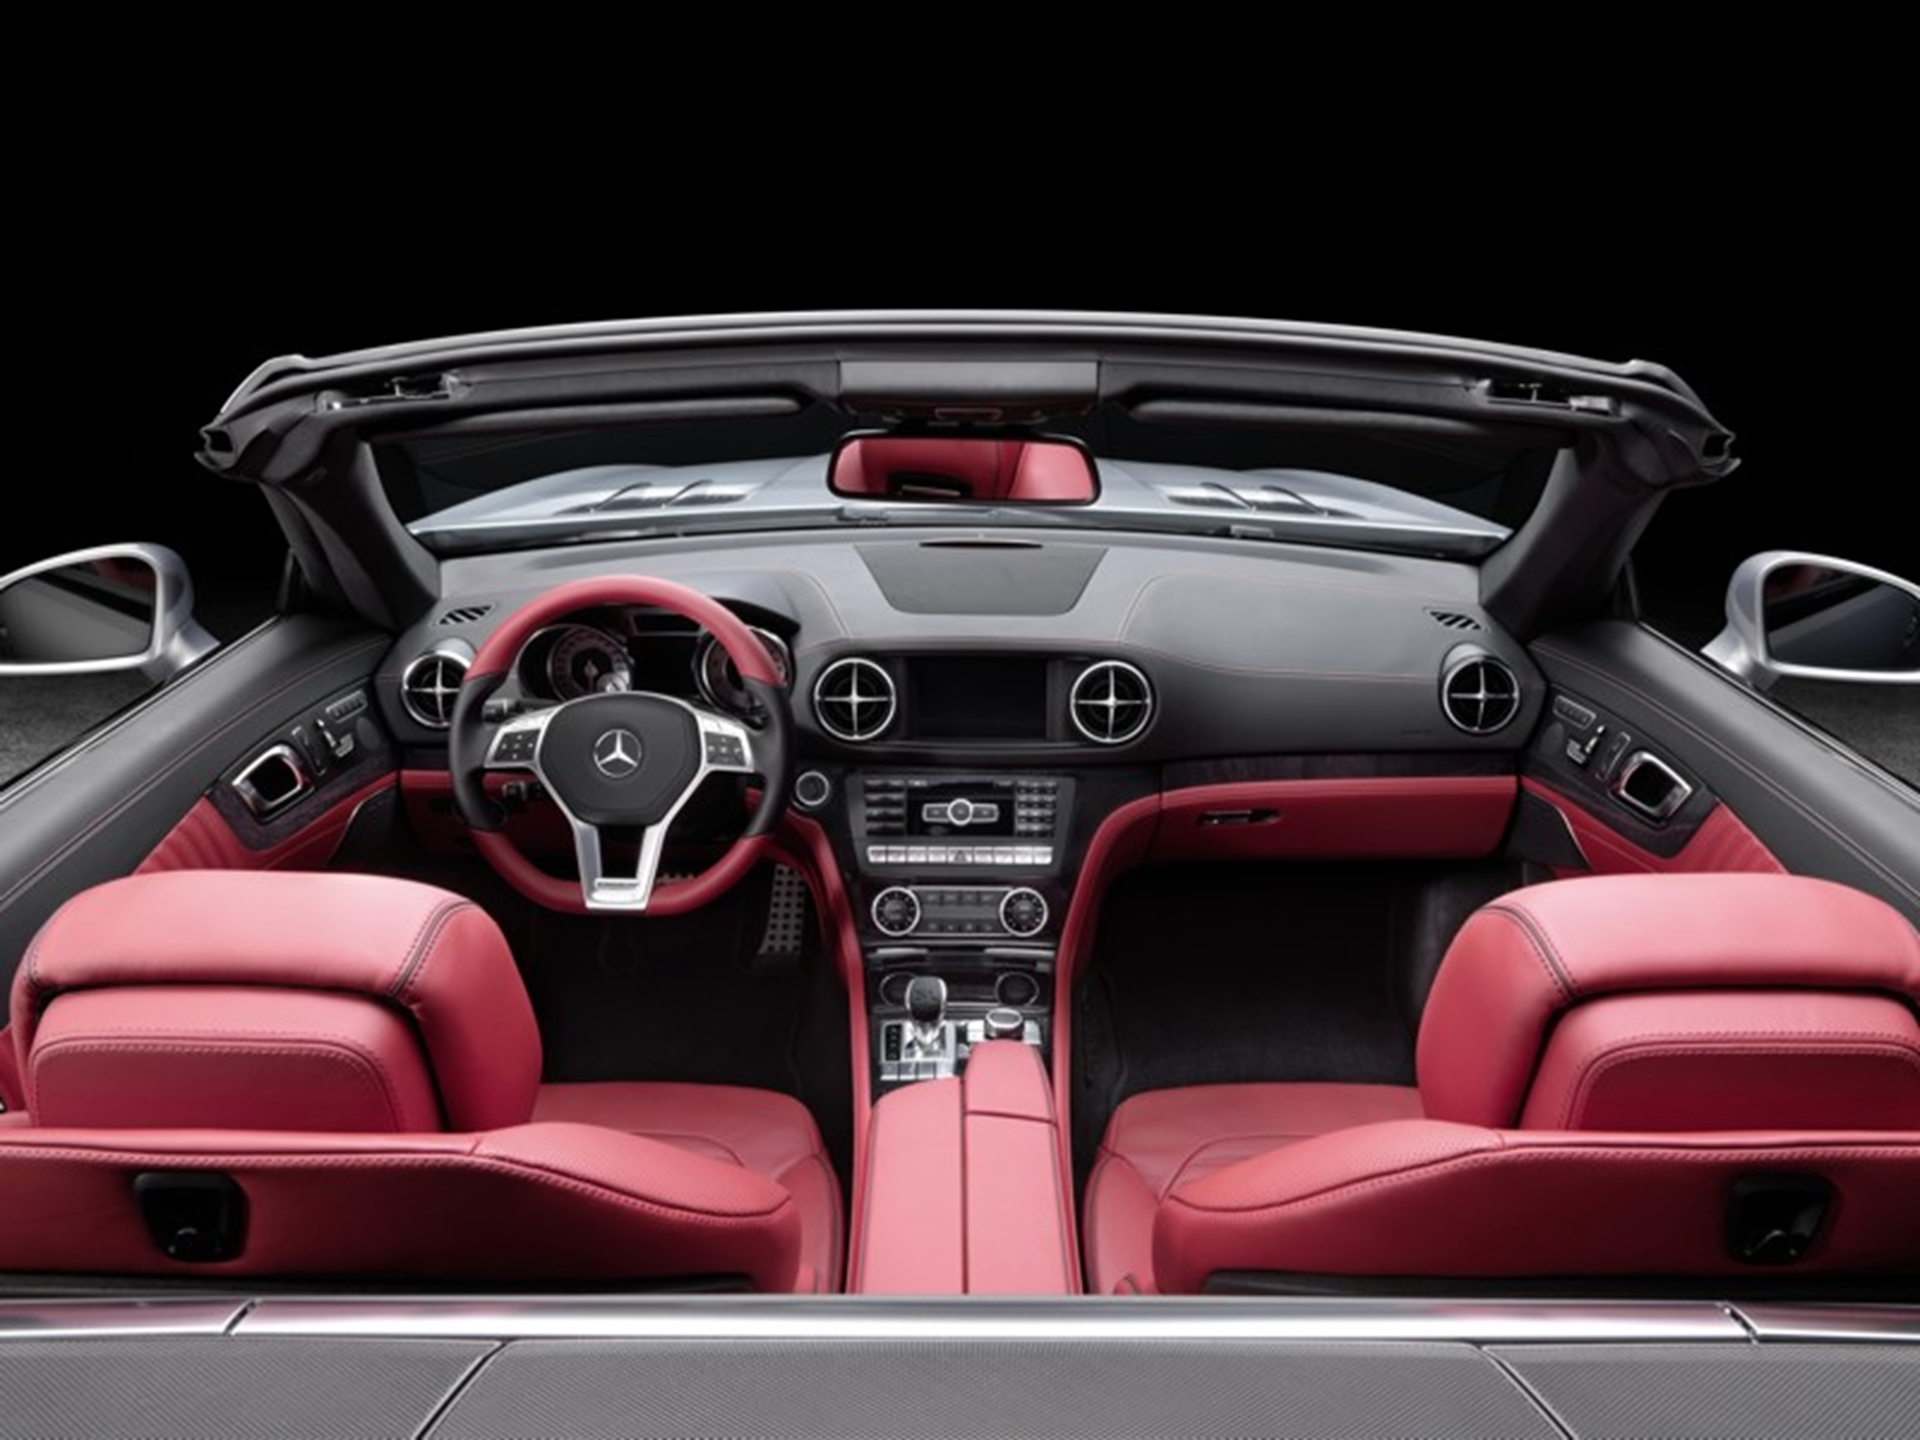 New Mercedes-Benz SL 2012